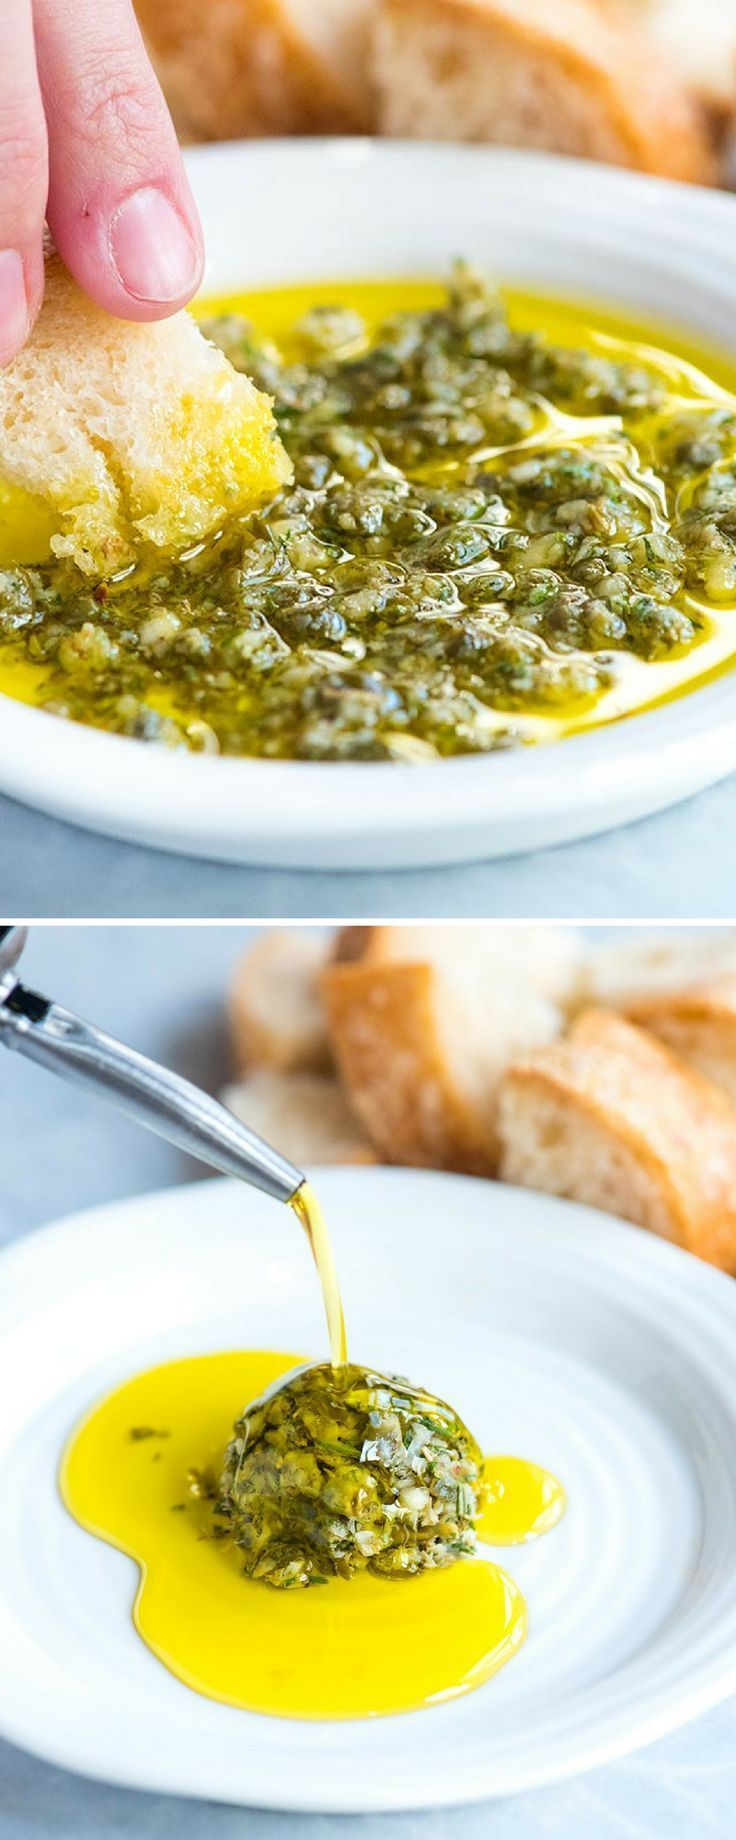 Ridiculously Good Olive Oil Dip Recipe #oliveoils